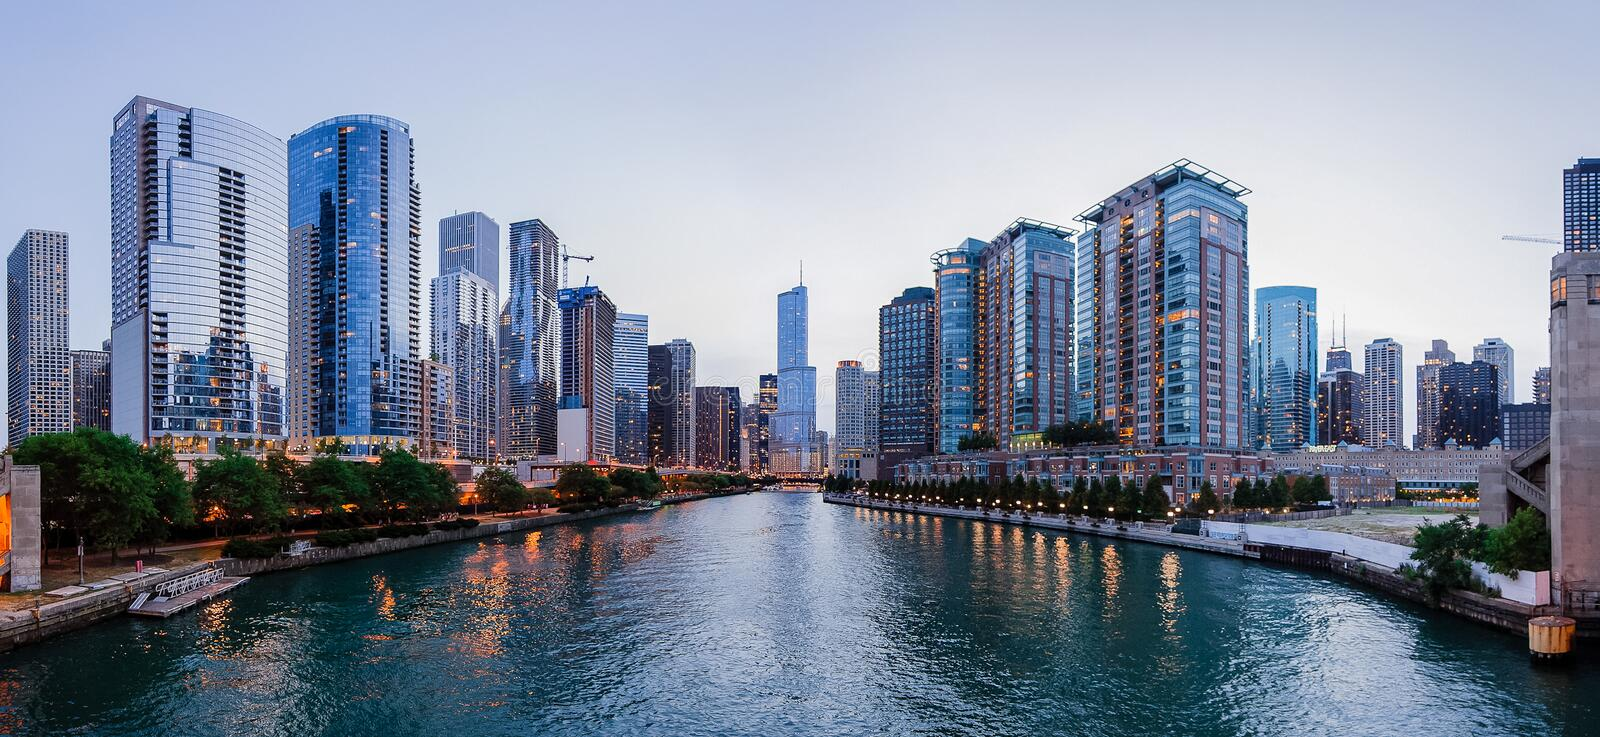 Trump International Tower and other buildings in Chicago. CHICAGO, IL - JULY 7: Trump International Tower and other buildings in Chicago, IL, shown in this river stock photo